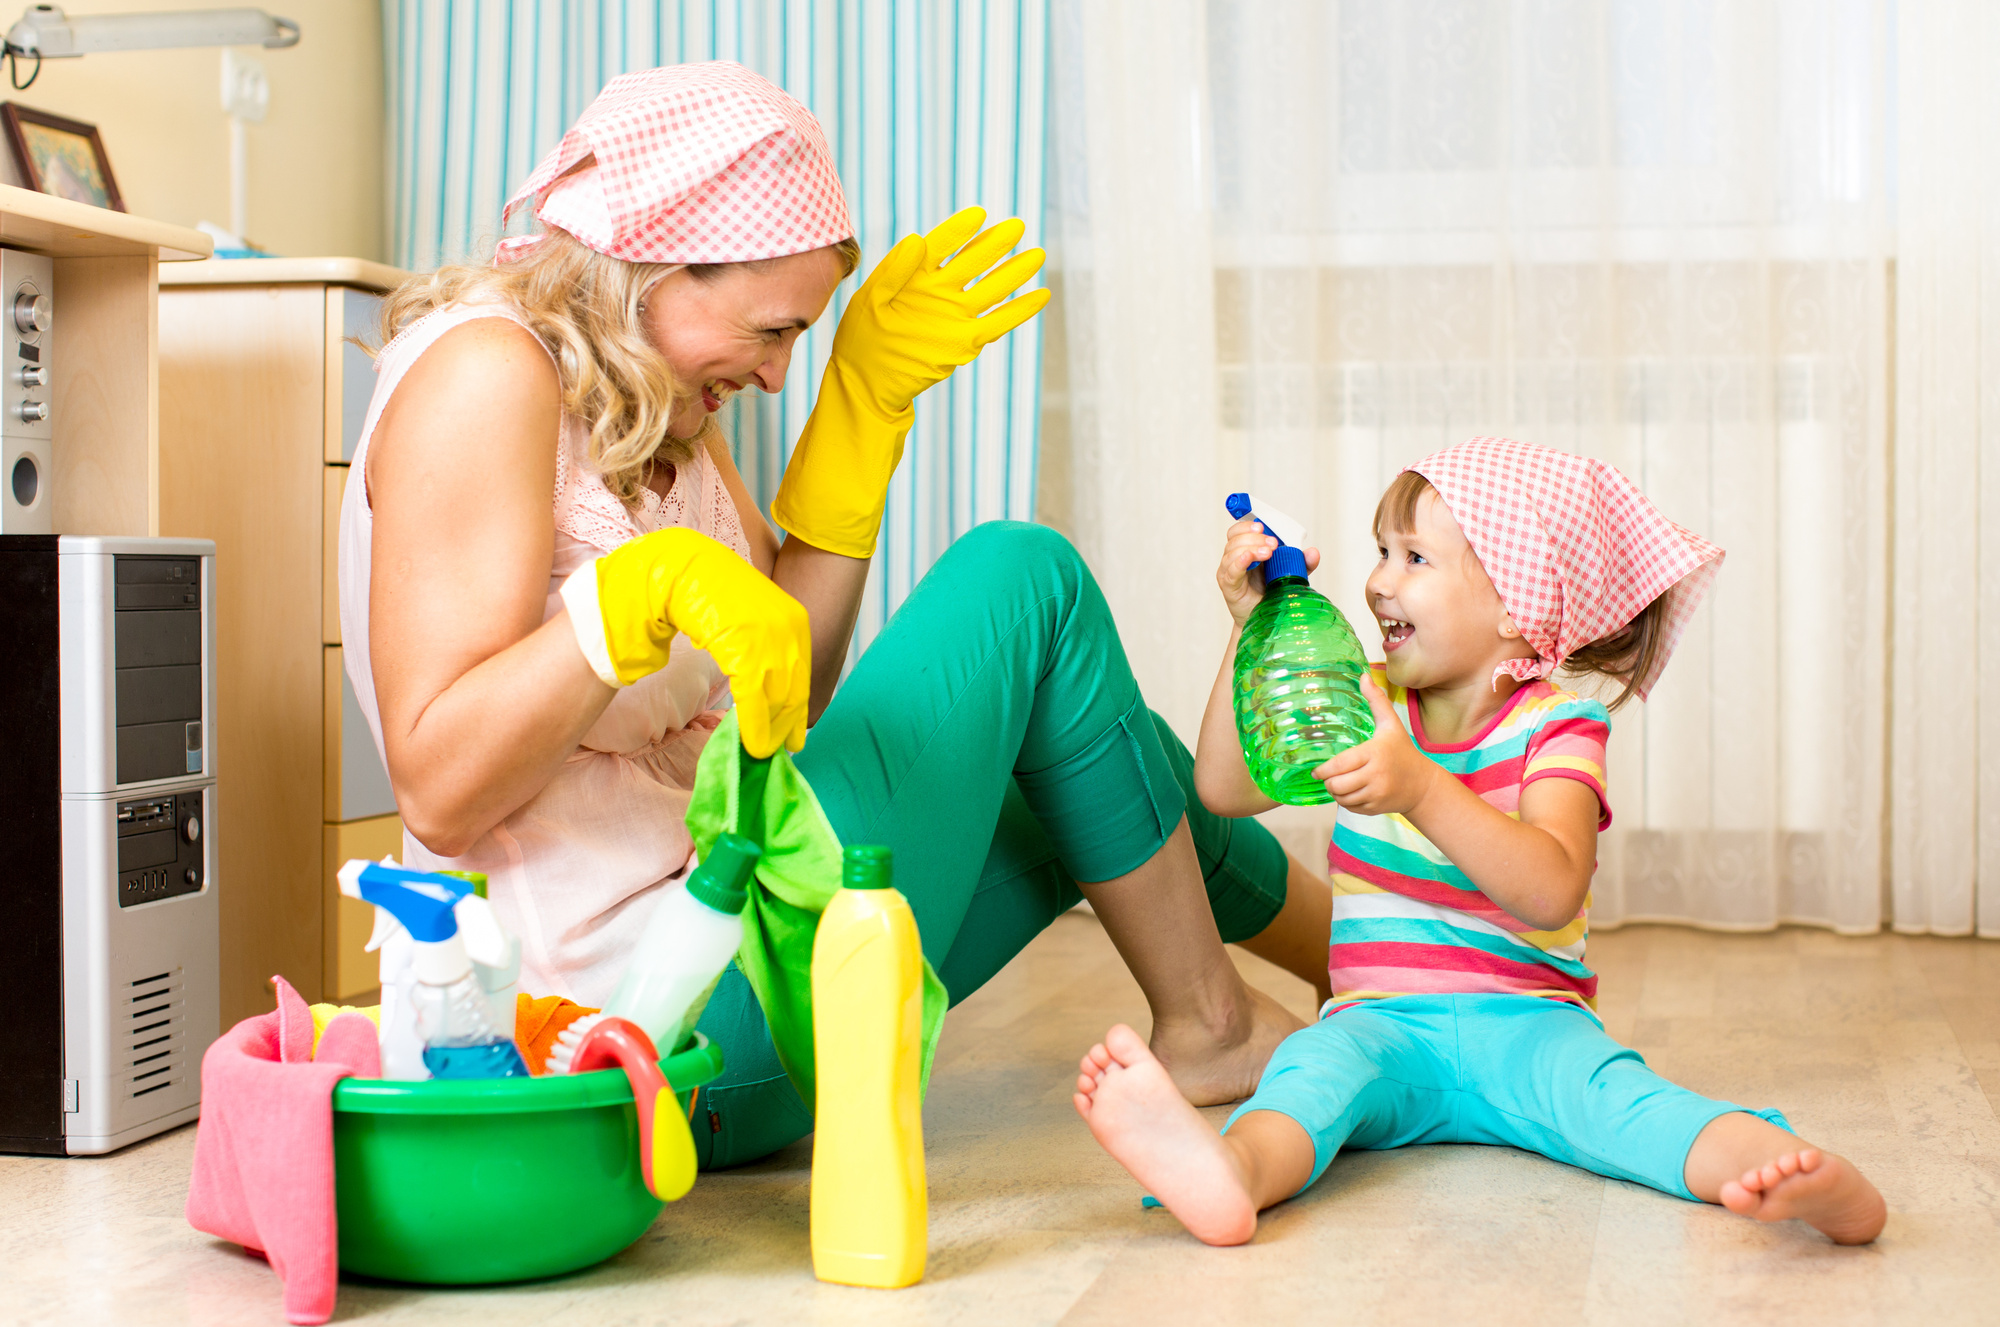 Top 10 Cool Ways to Make Tidying Up More Fun for Kids